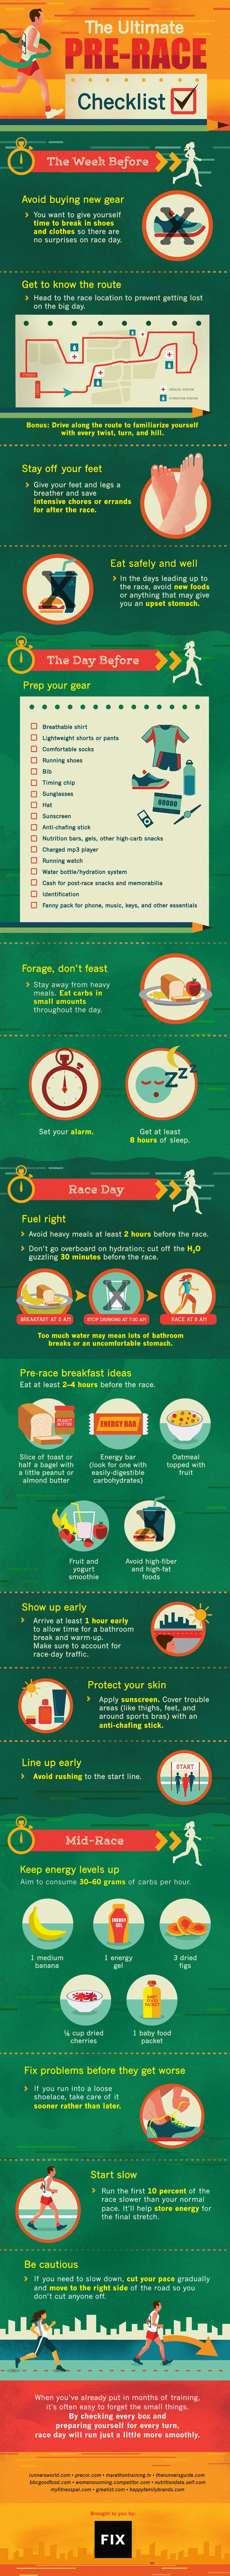 Don't let months of training go to waste. Follow our pre-race running checklist to make sure you're fully prepared in the week, days, and moments before your big race begins. #running http://www.fix.com/blog/ultimate-pre-race-running-checklist/